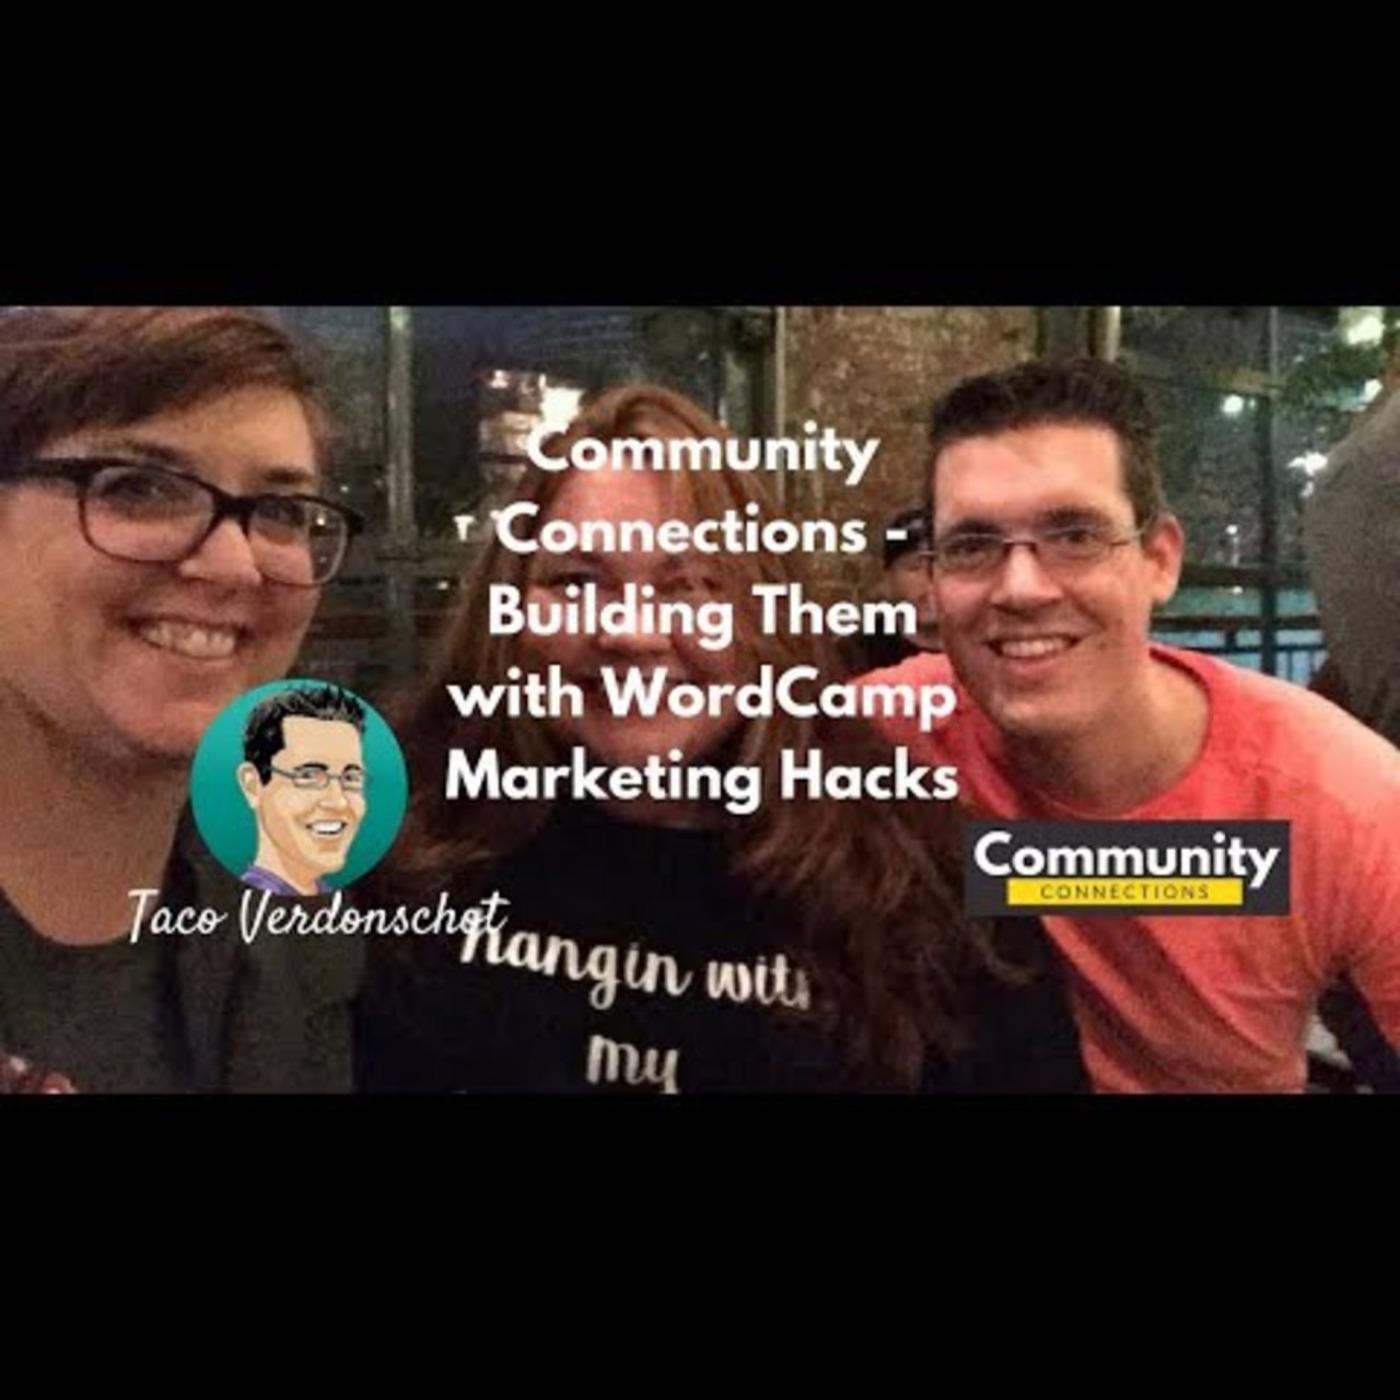 EP11 – International Community Growing – How Taco Verdonschot Unites Volunteers at WCEU – Community Connections